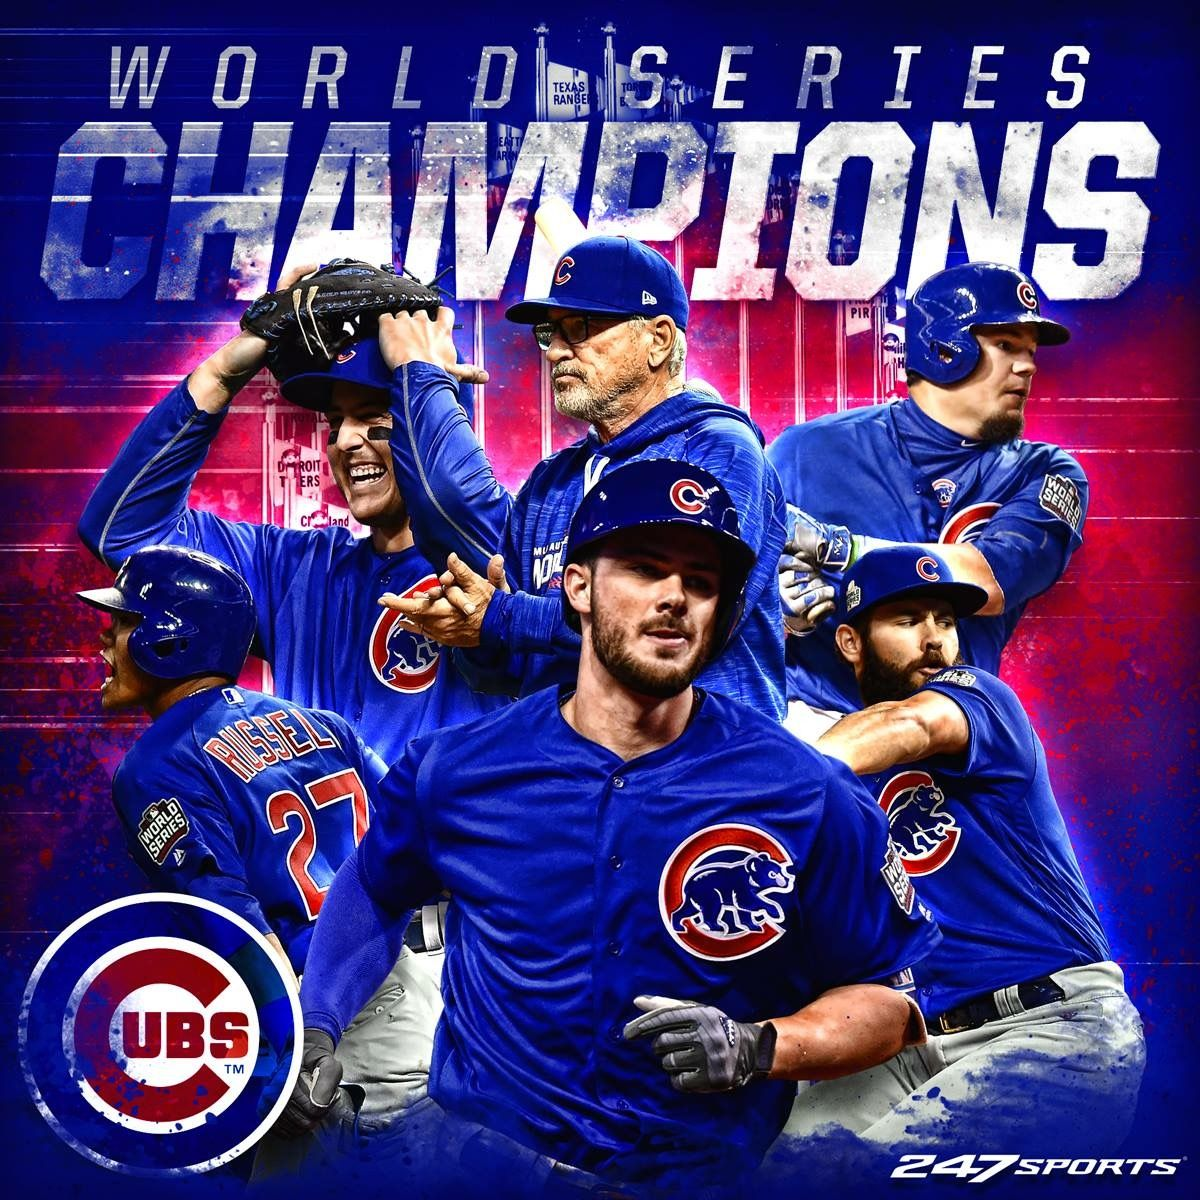 Pin On Cubs 2016 Champs